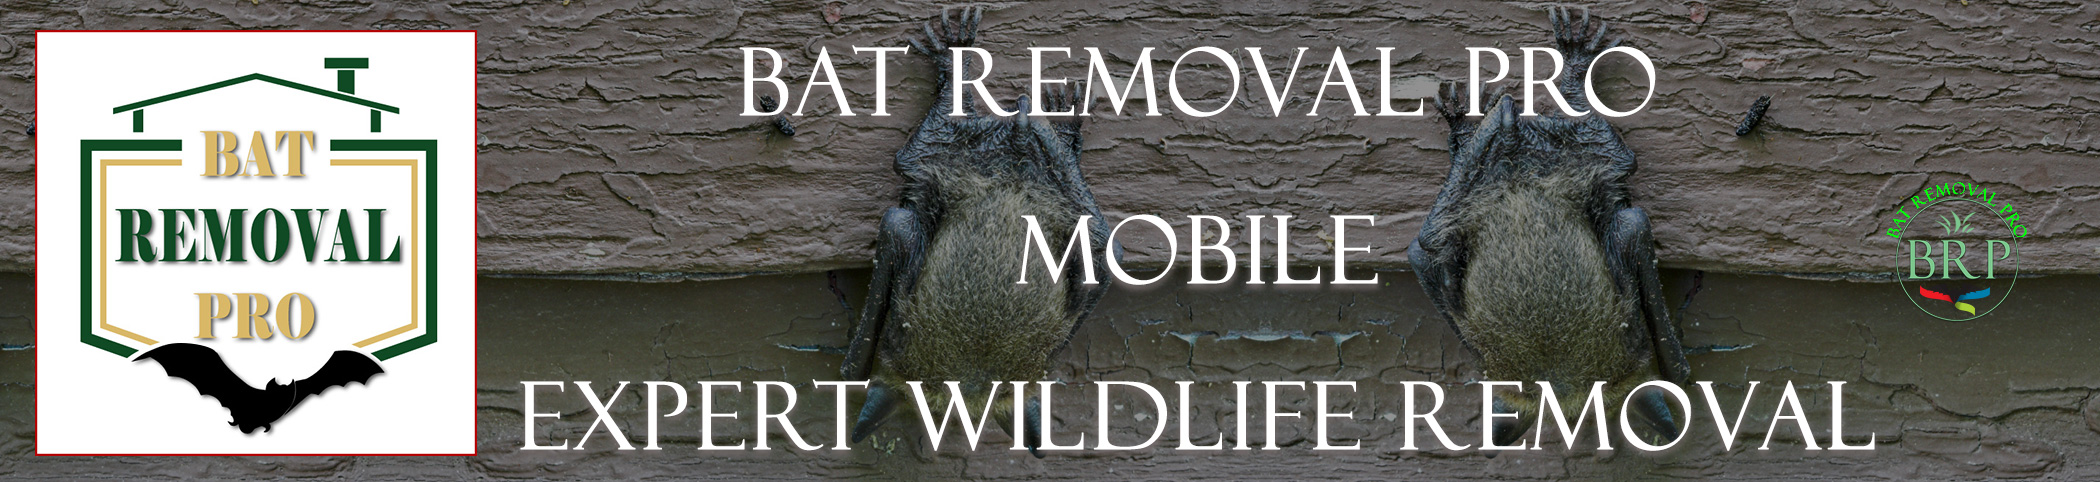 mobile_alabama_HEADER_IMAGE bat removal pro